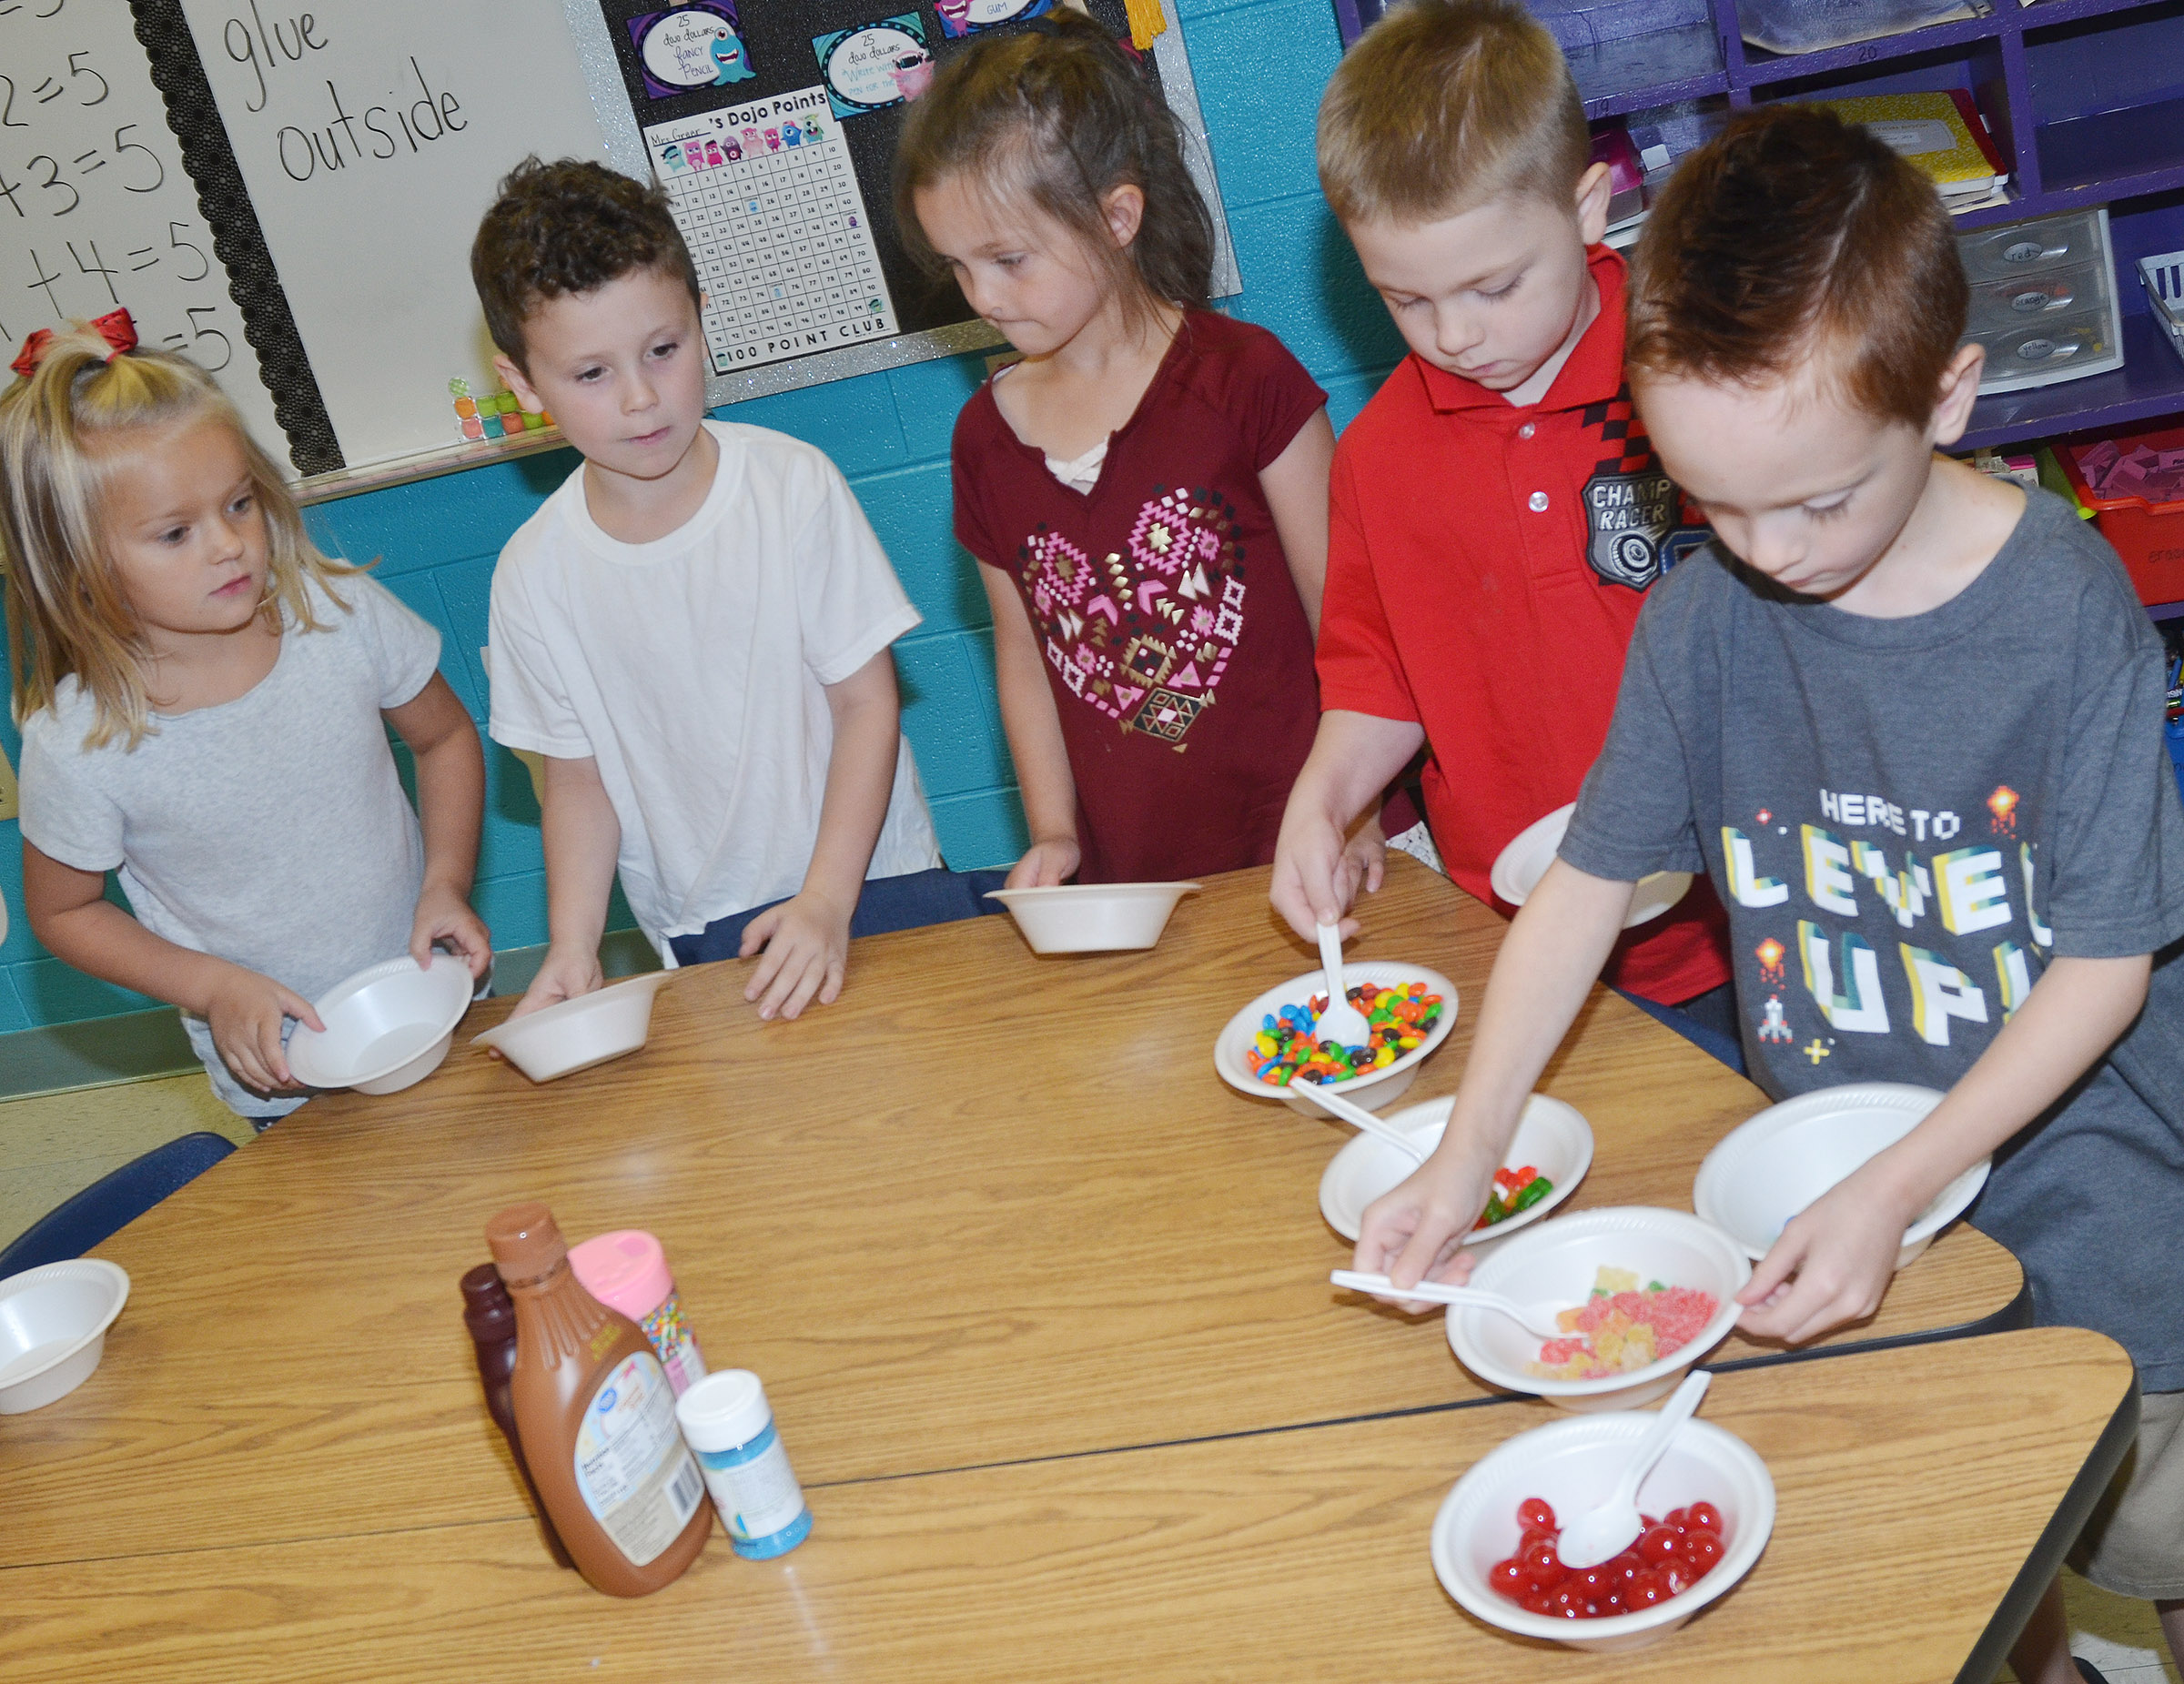 CES first-grader Carson Montes gets gummy bears for his ice cream sundae, as his classmates, from left, Miley Orberson, Braydan Dyer, Addison Perkins and Noah Milburn wait their turn.